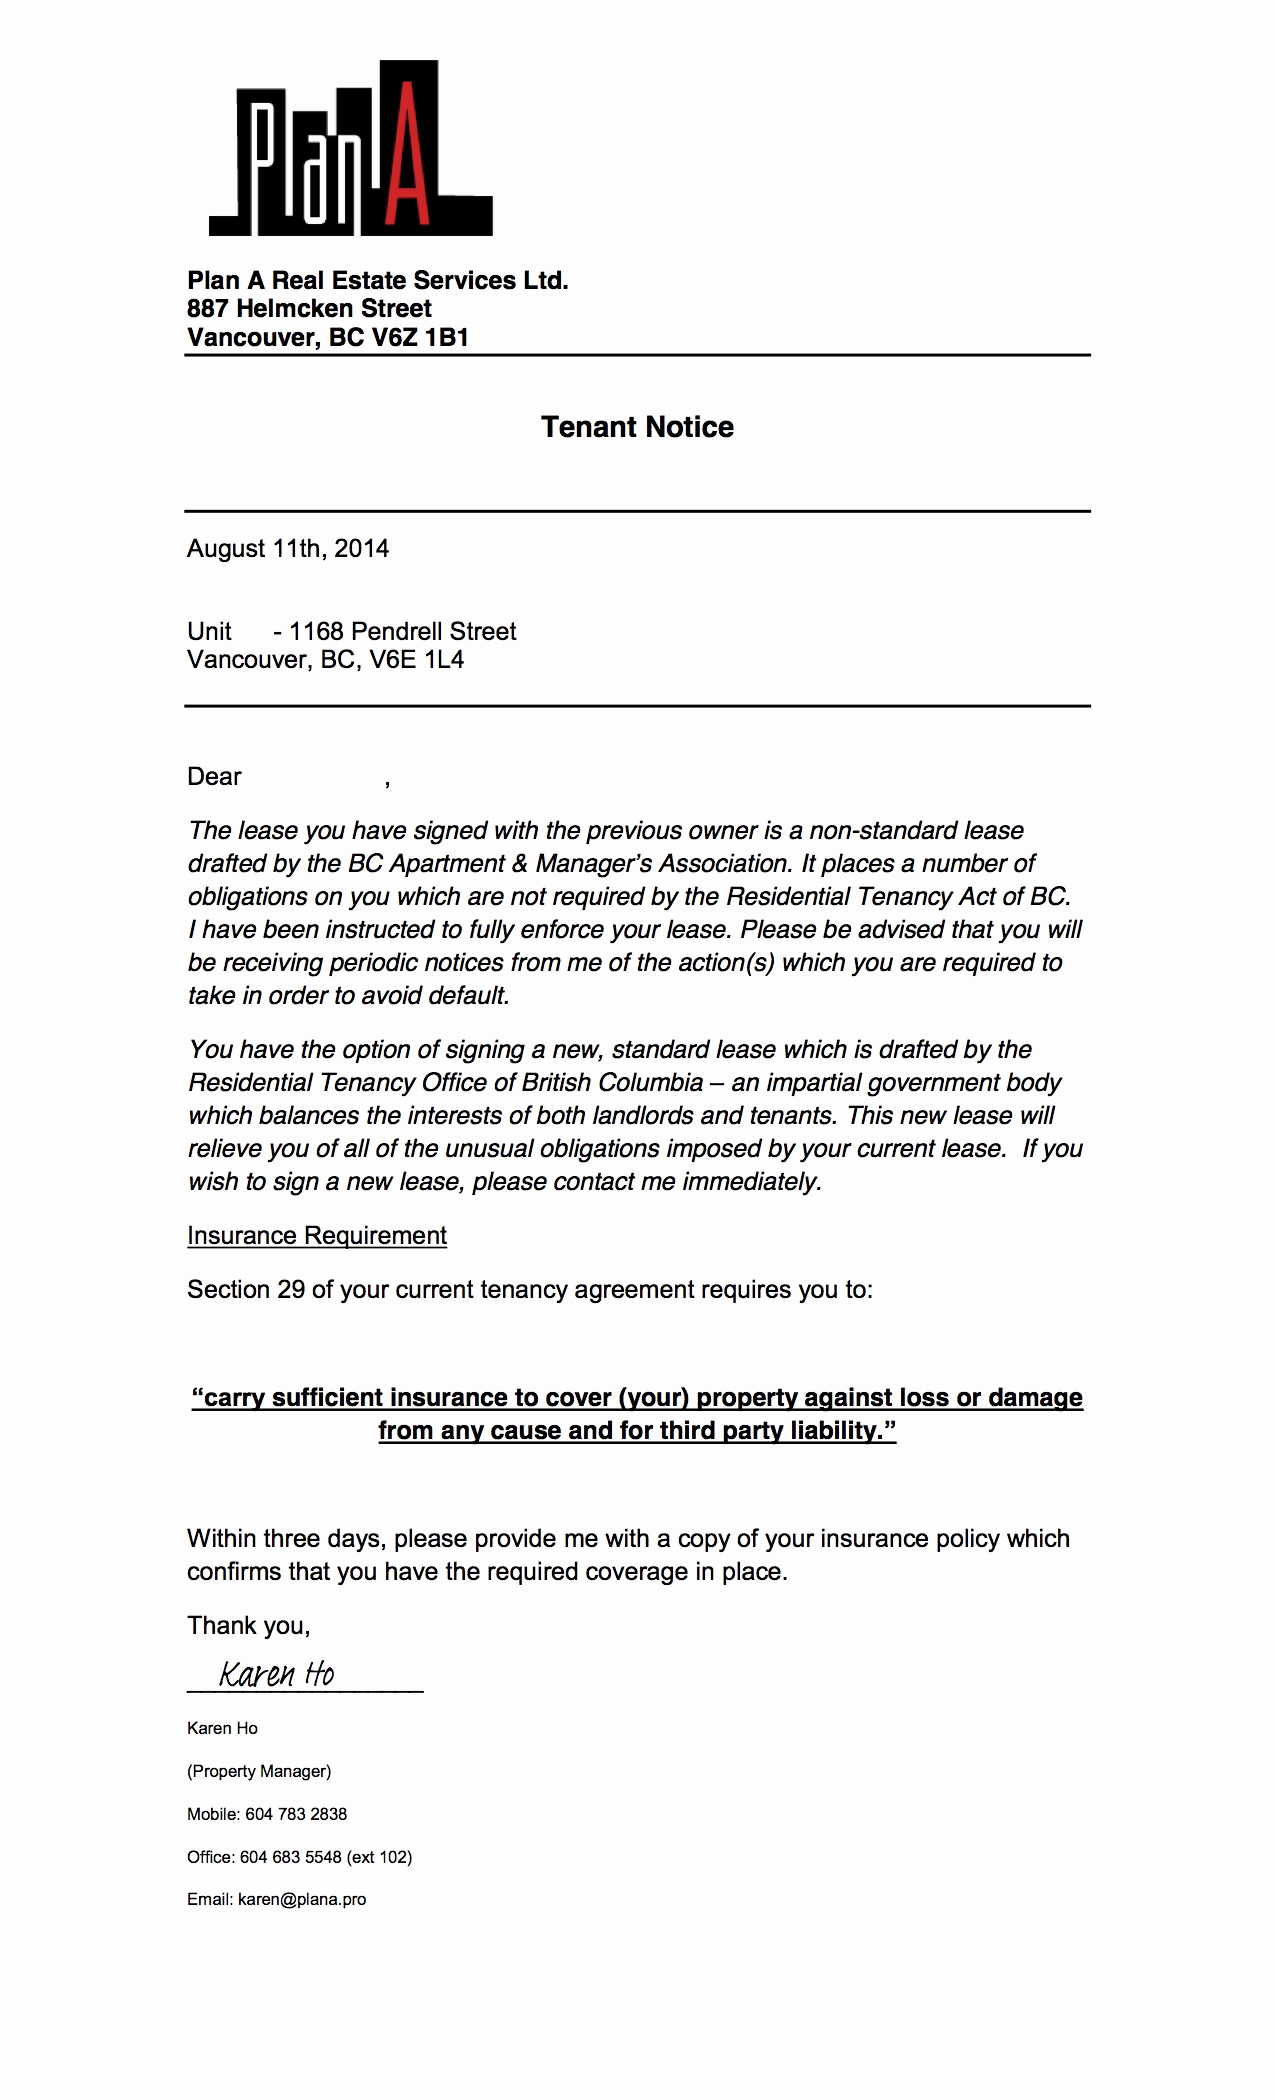 Notice Letter to Landlord New Greedeviction 1168pendrell